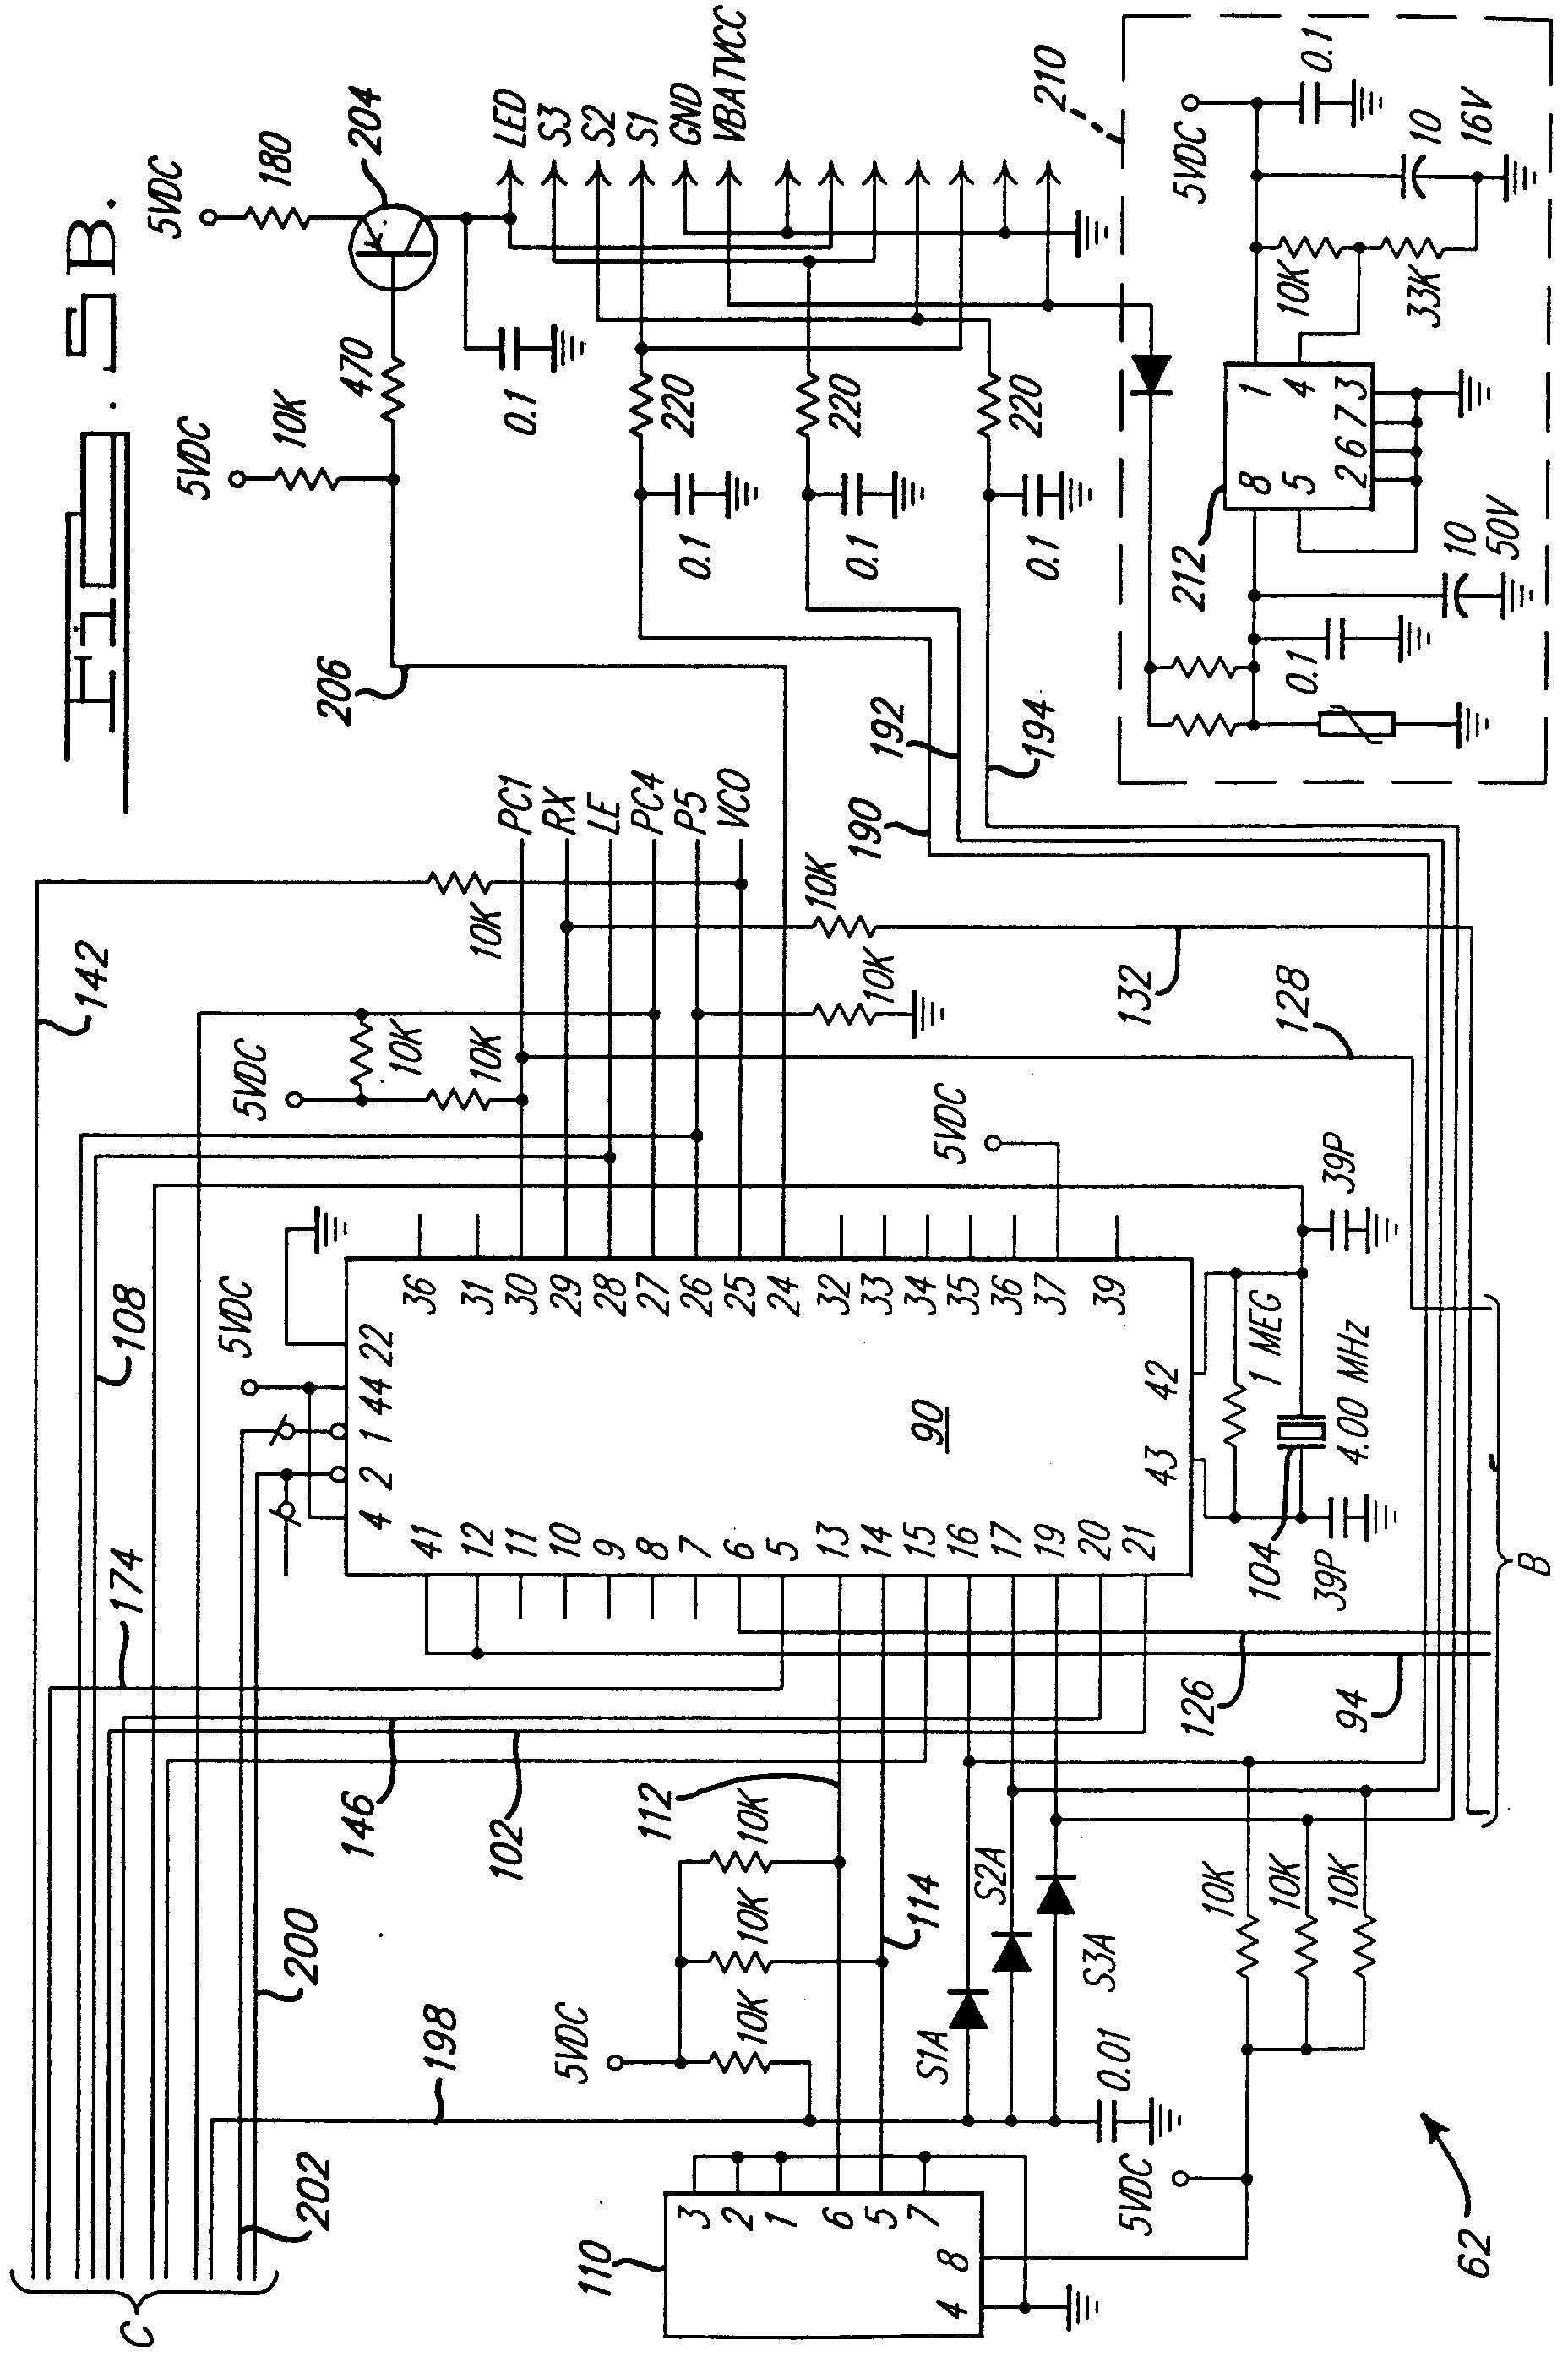 wiring diagram for lift master safety sensors